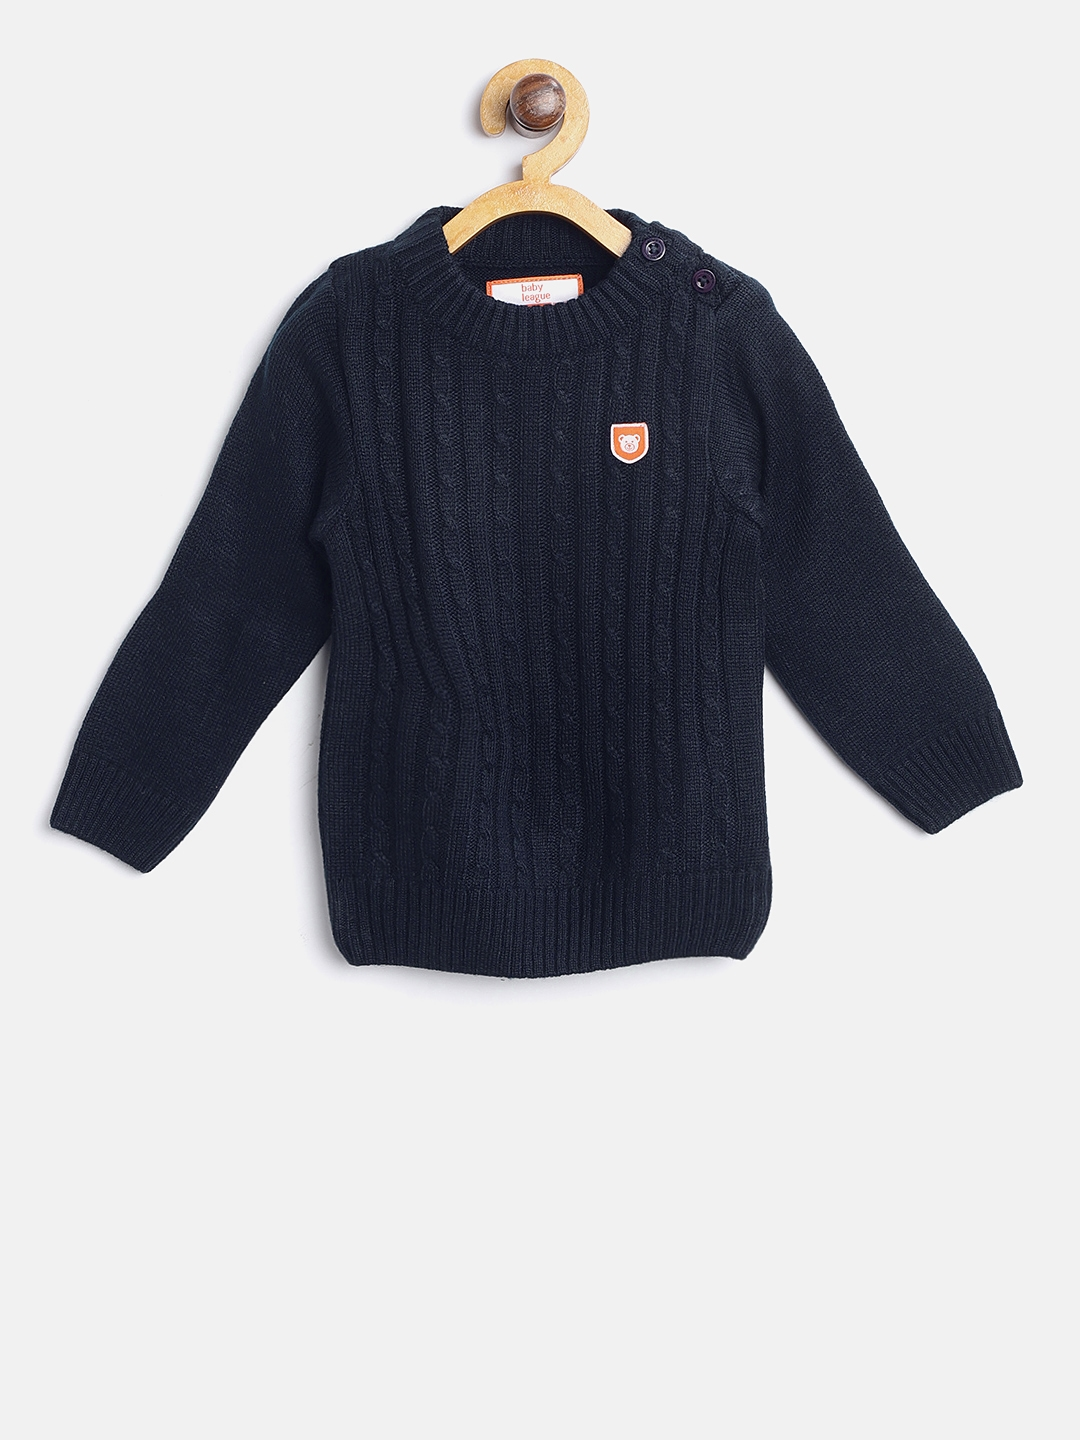 b08bc716c1da Buy 612 League Boys Navy Blue Cable Knit Pullover - Sweaters for ...